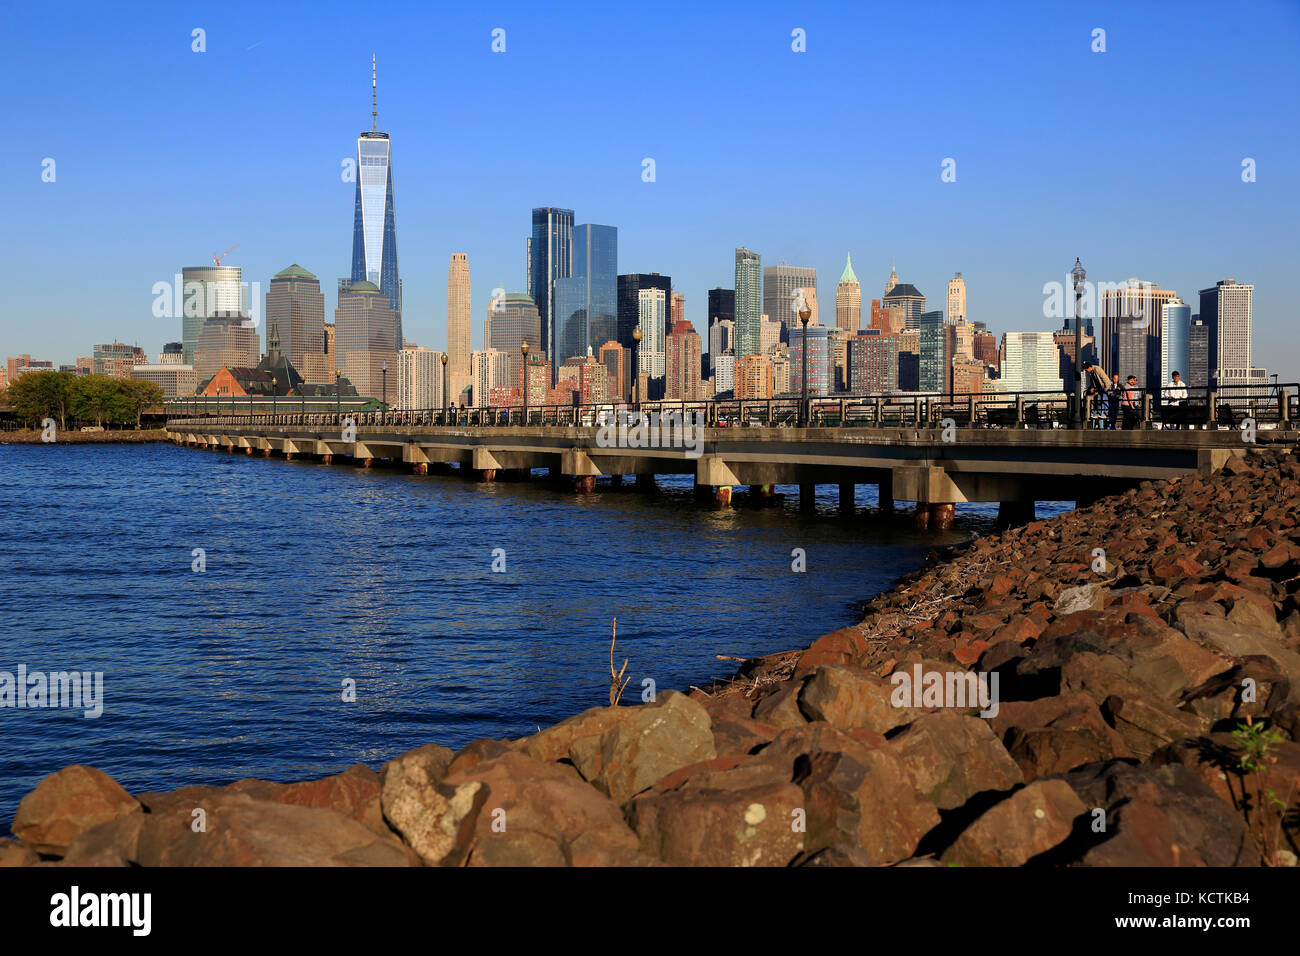 Skyline of Lower Manhattan with North Cove in foreground inside Liberty State Park. New Jersey.USA - Stock Image